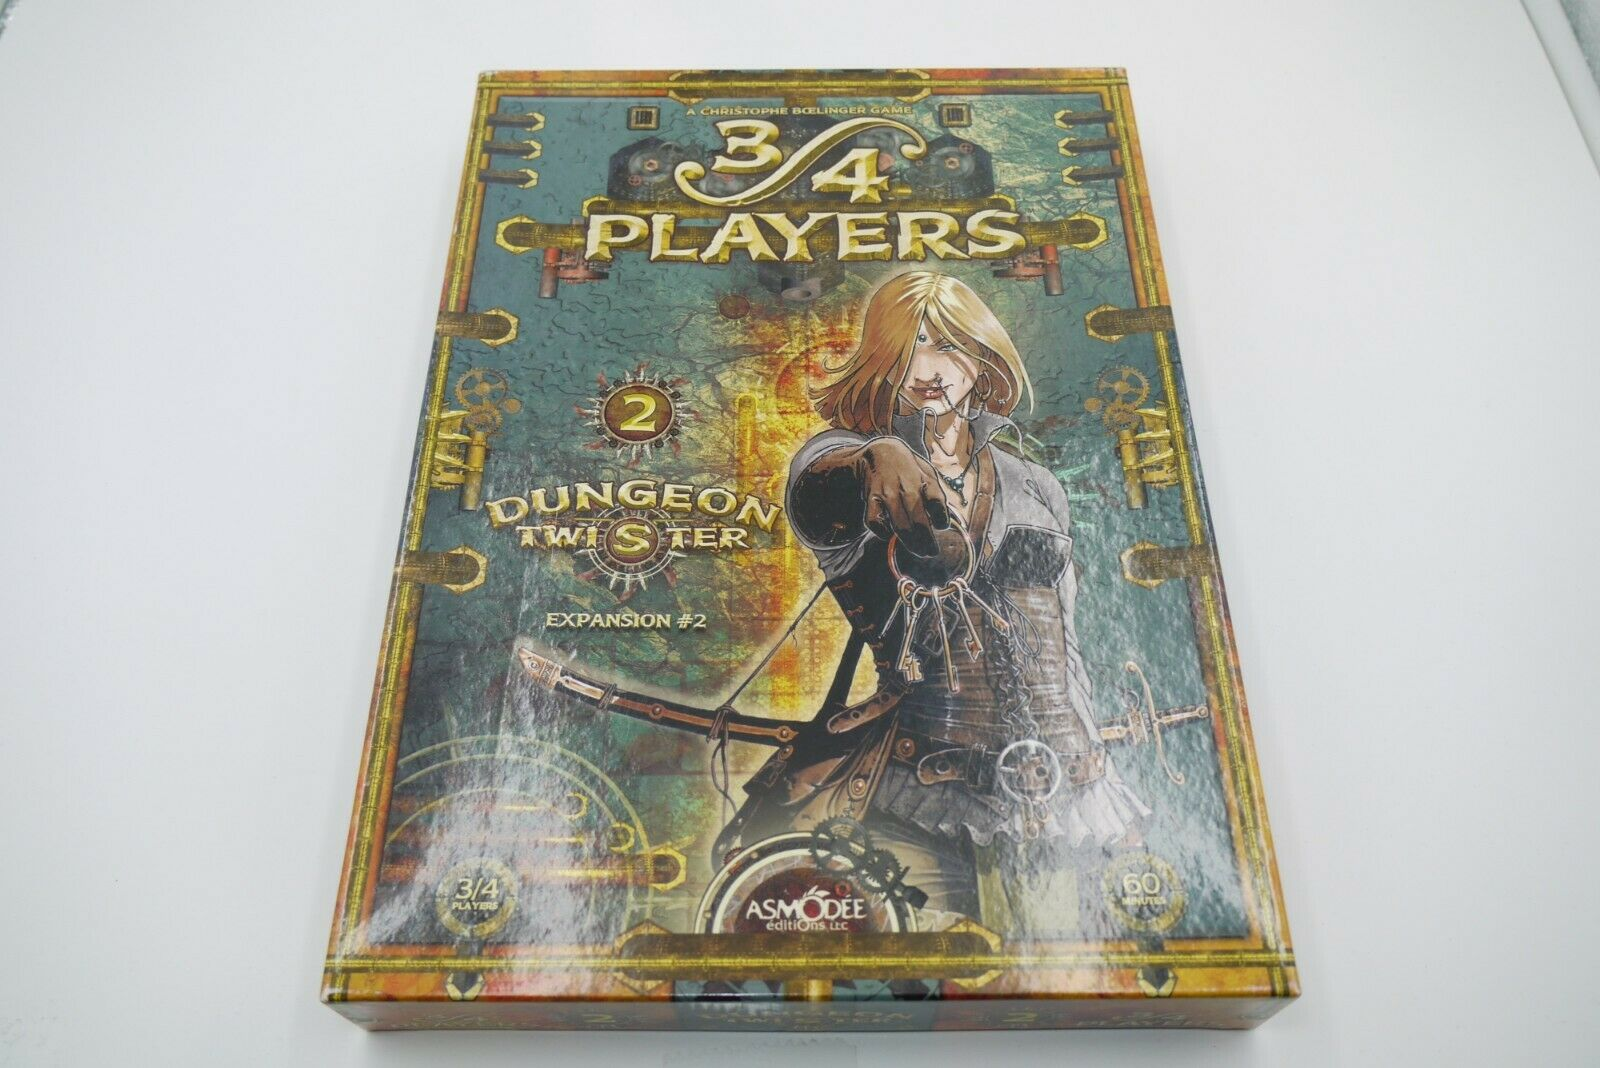 DUNGEON TWISTER 2 Expansion 3 4 PLAYERS tavola gioco  ASMODEE completare  Senza tasse